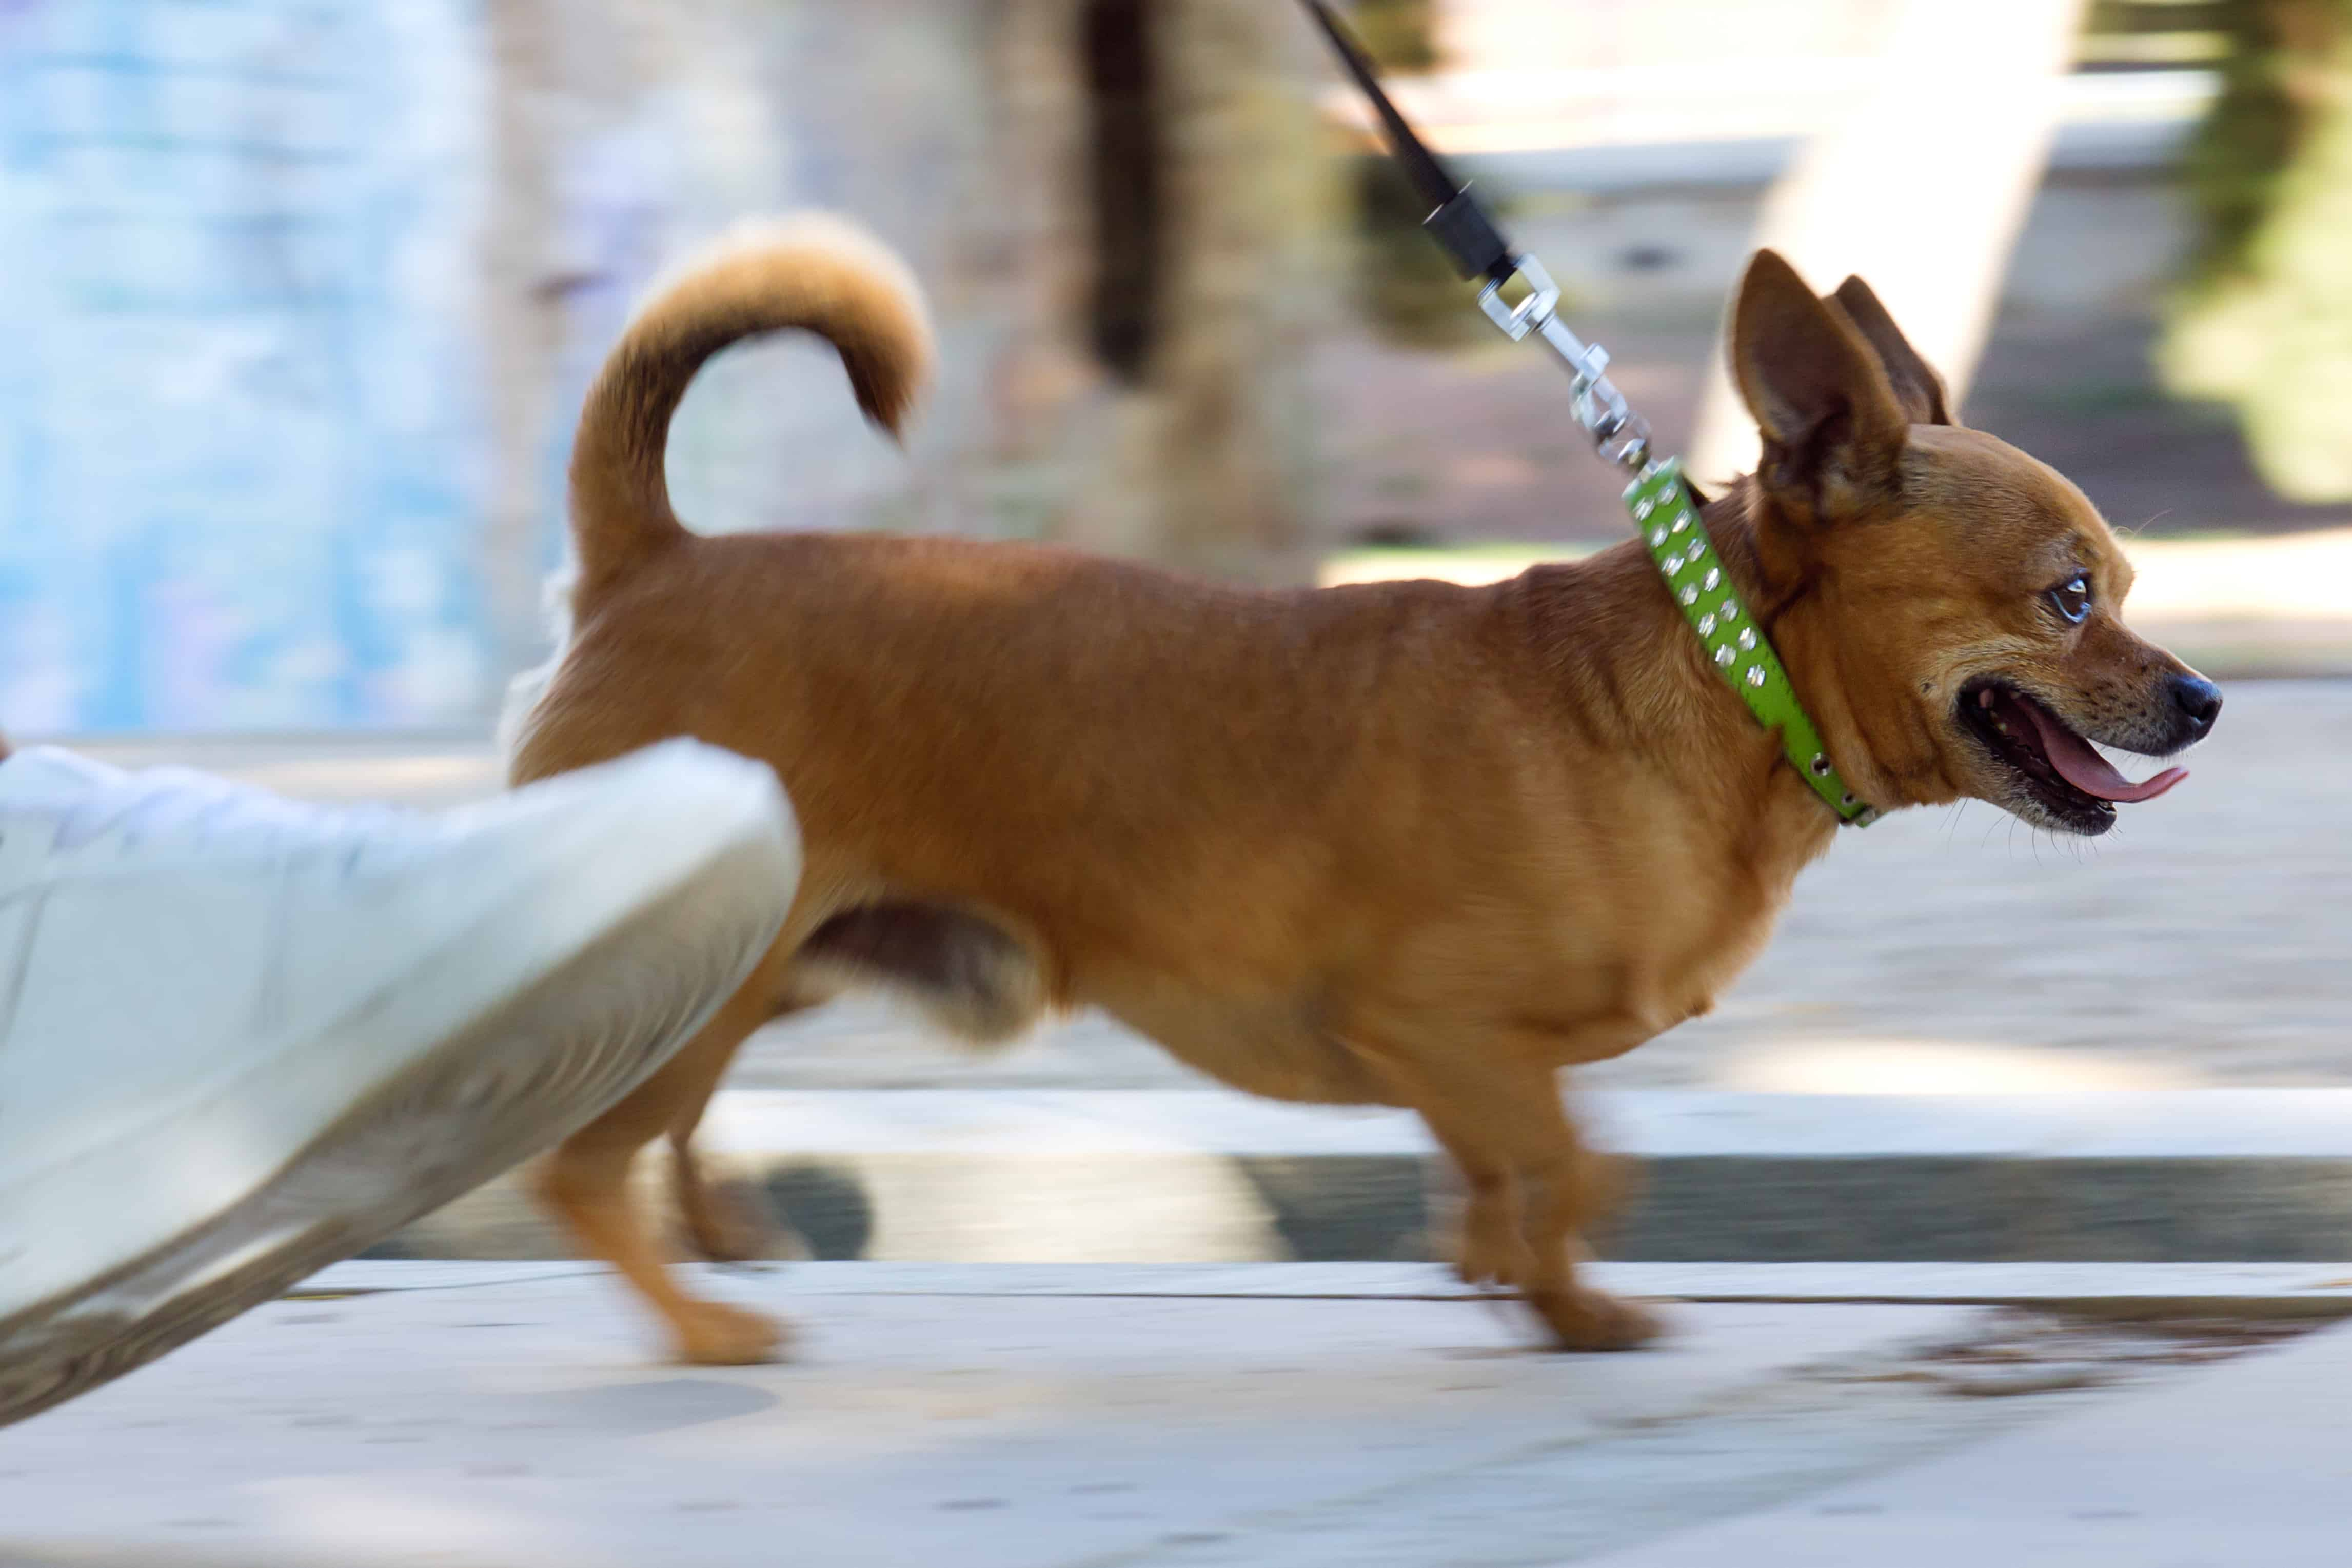 Small dog with green collar walking